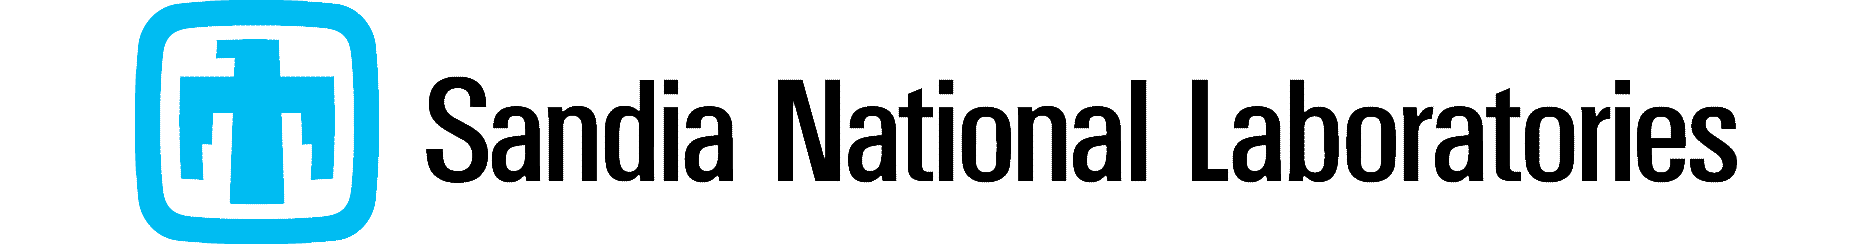 4sandia-national-laboratories.png